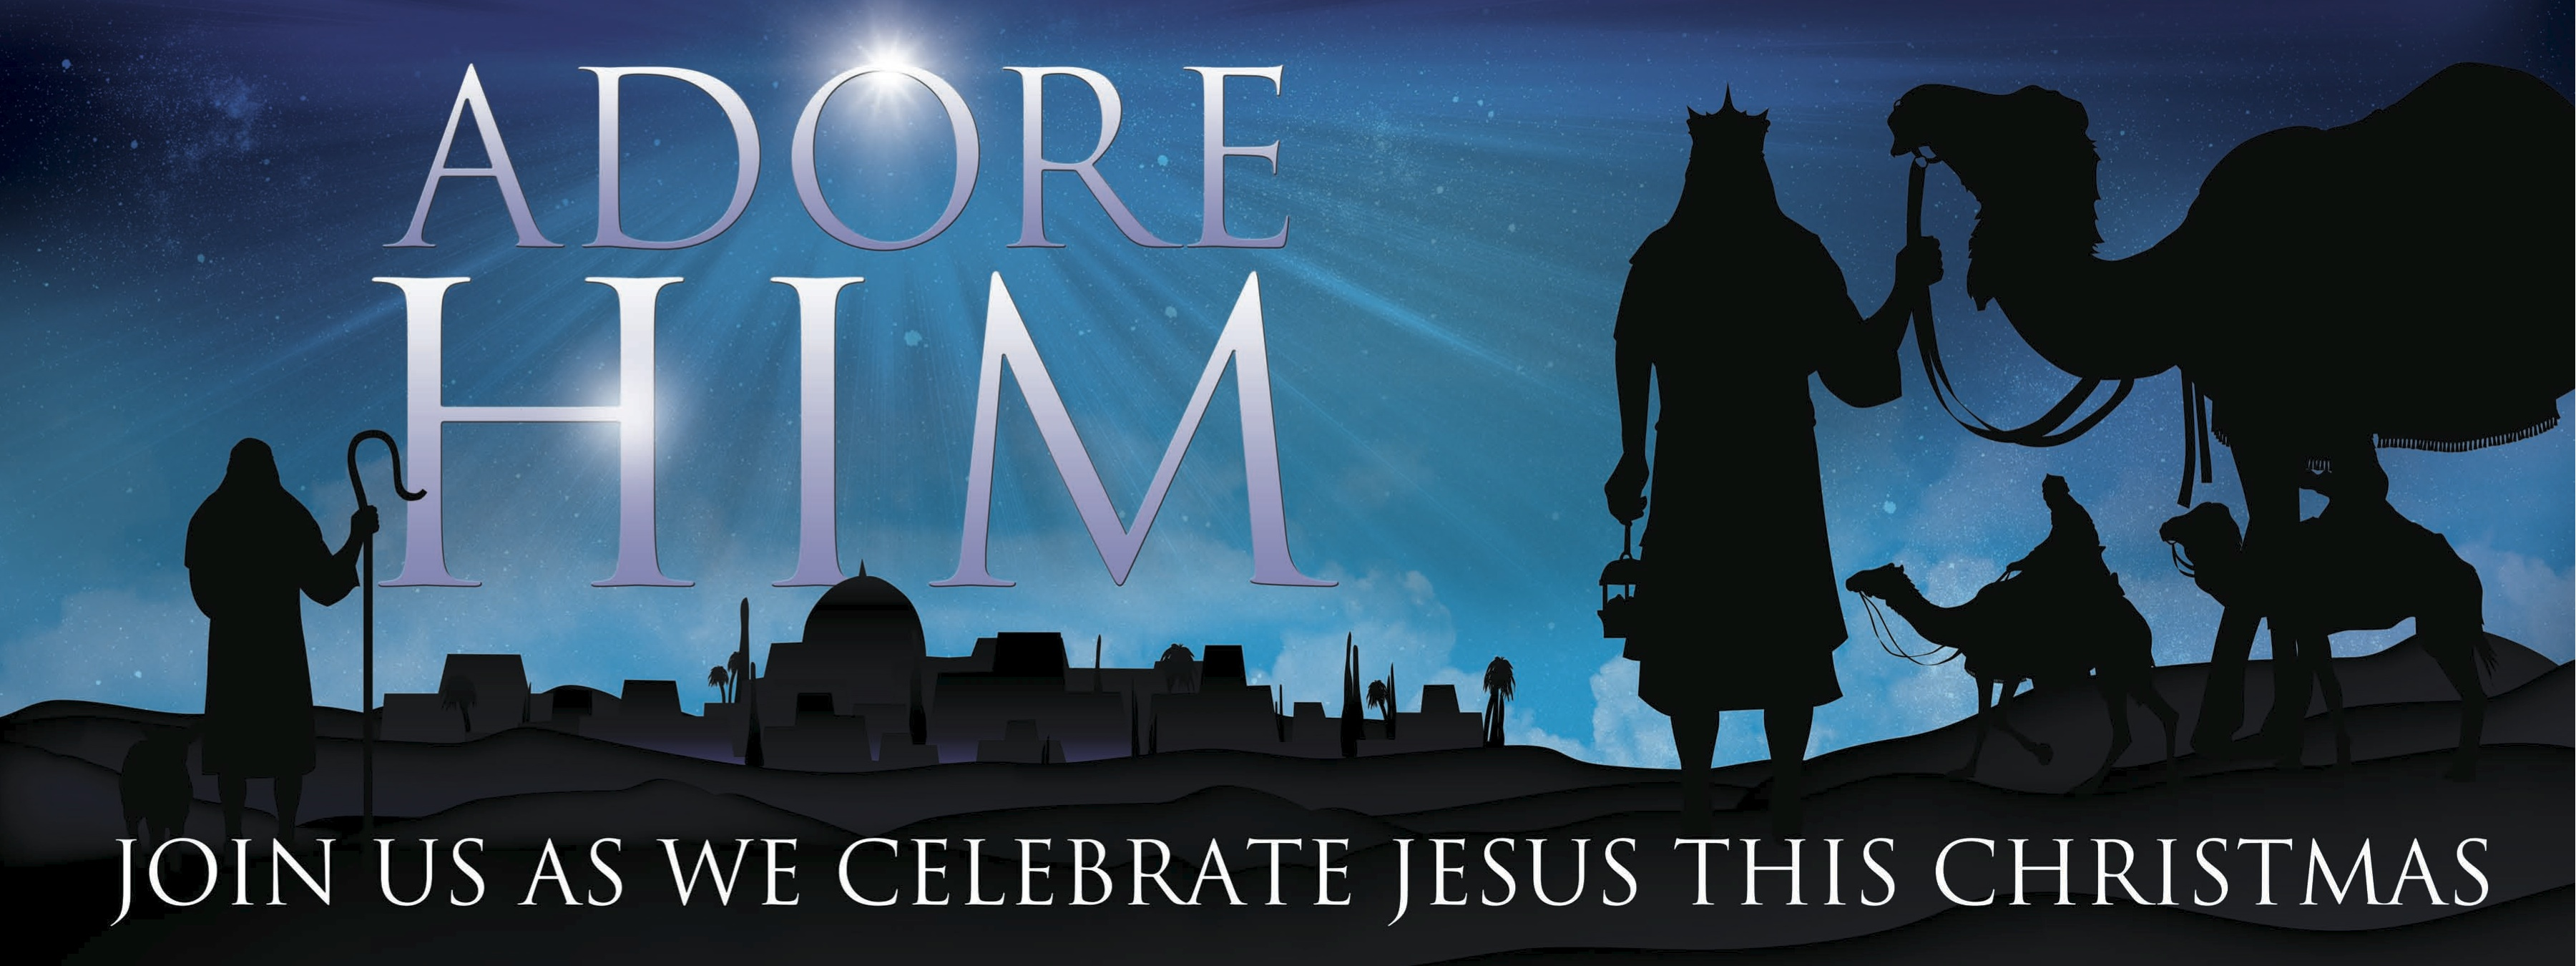 Christmas eve worship service ideas - 5pm Childrens Nativity Candlelight Service Sanctuary